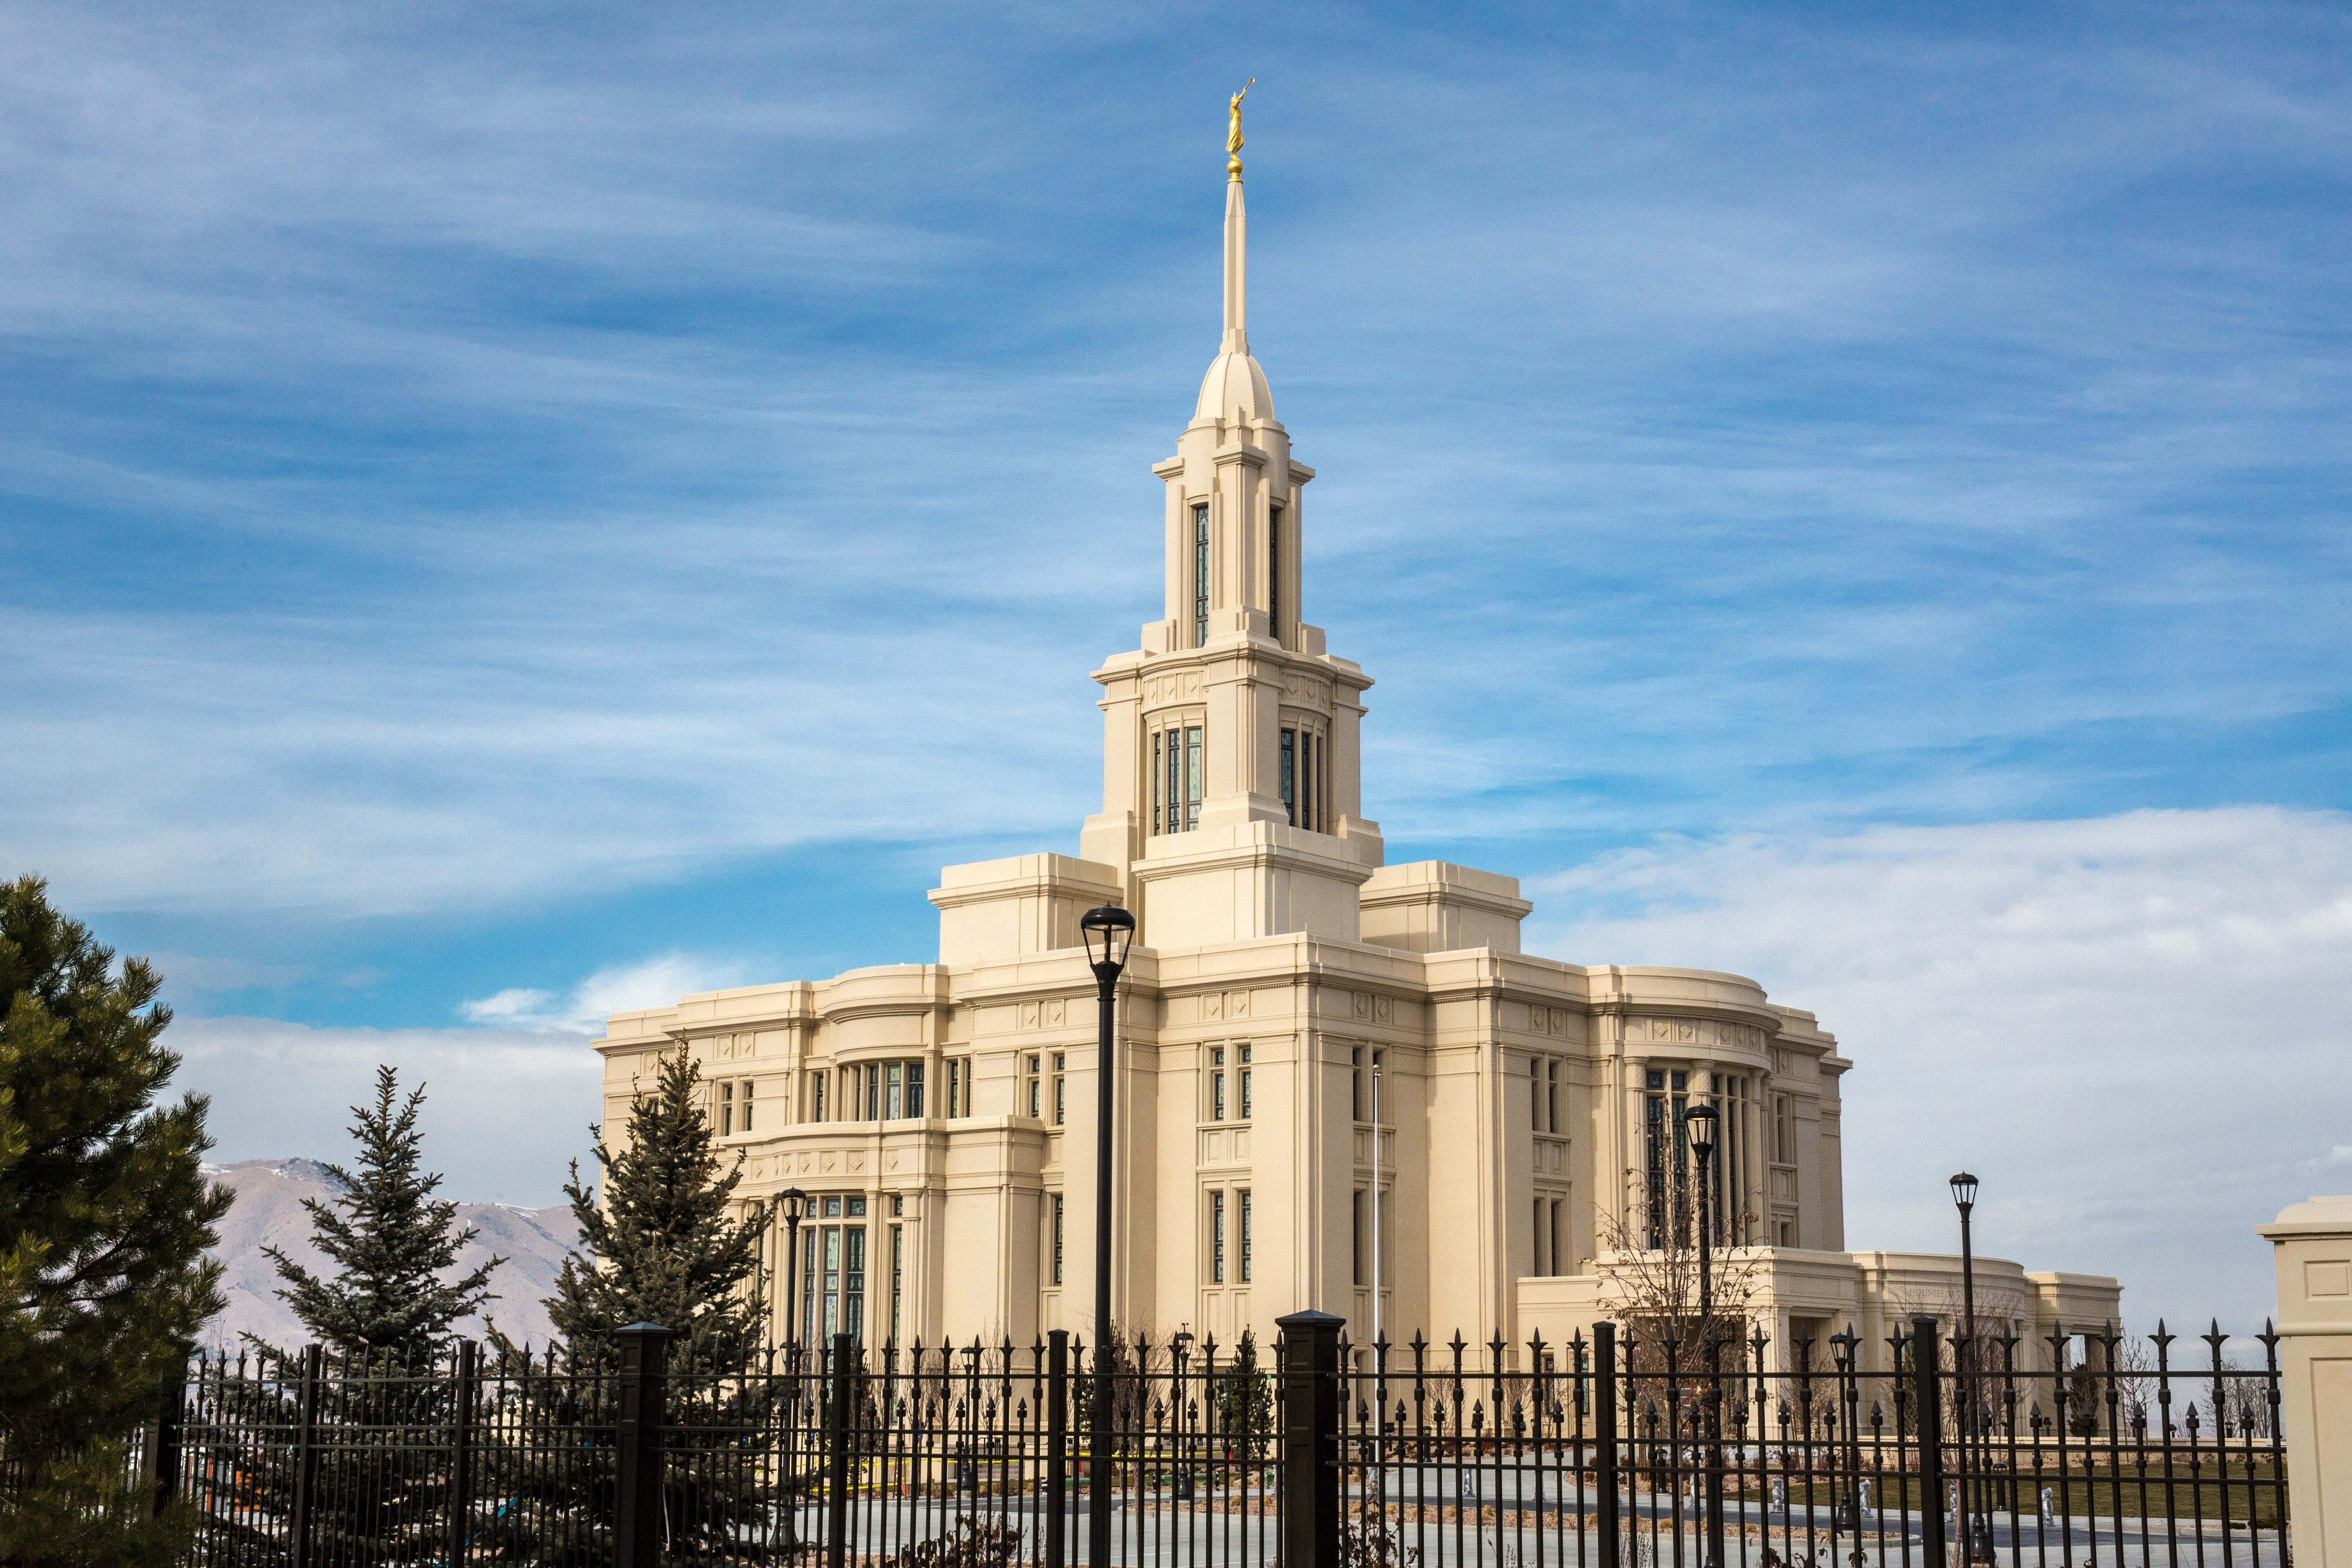 An angle view of the Payson Utah Temple during the day.